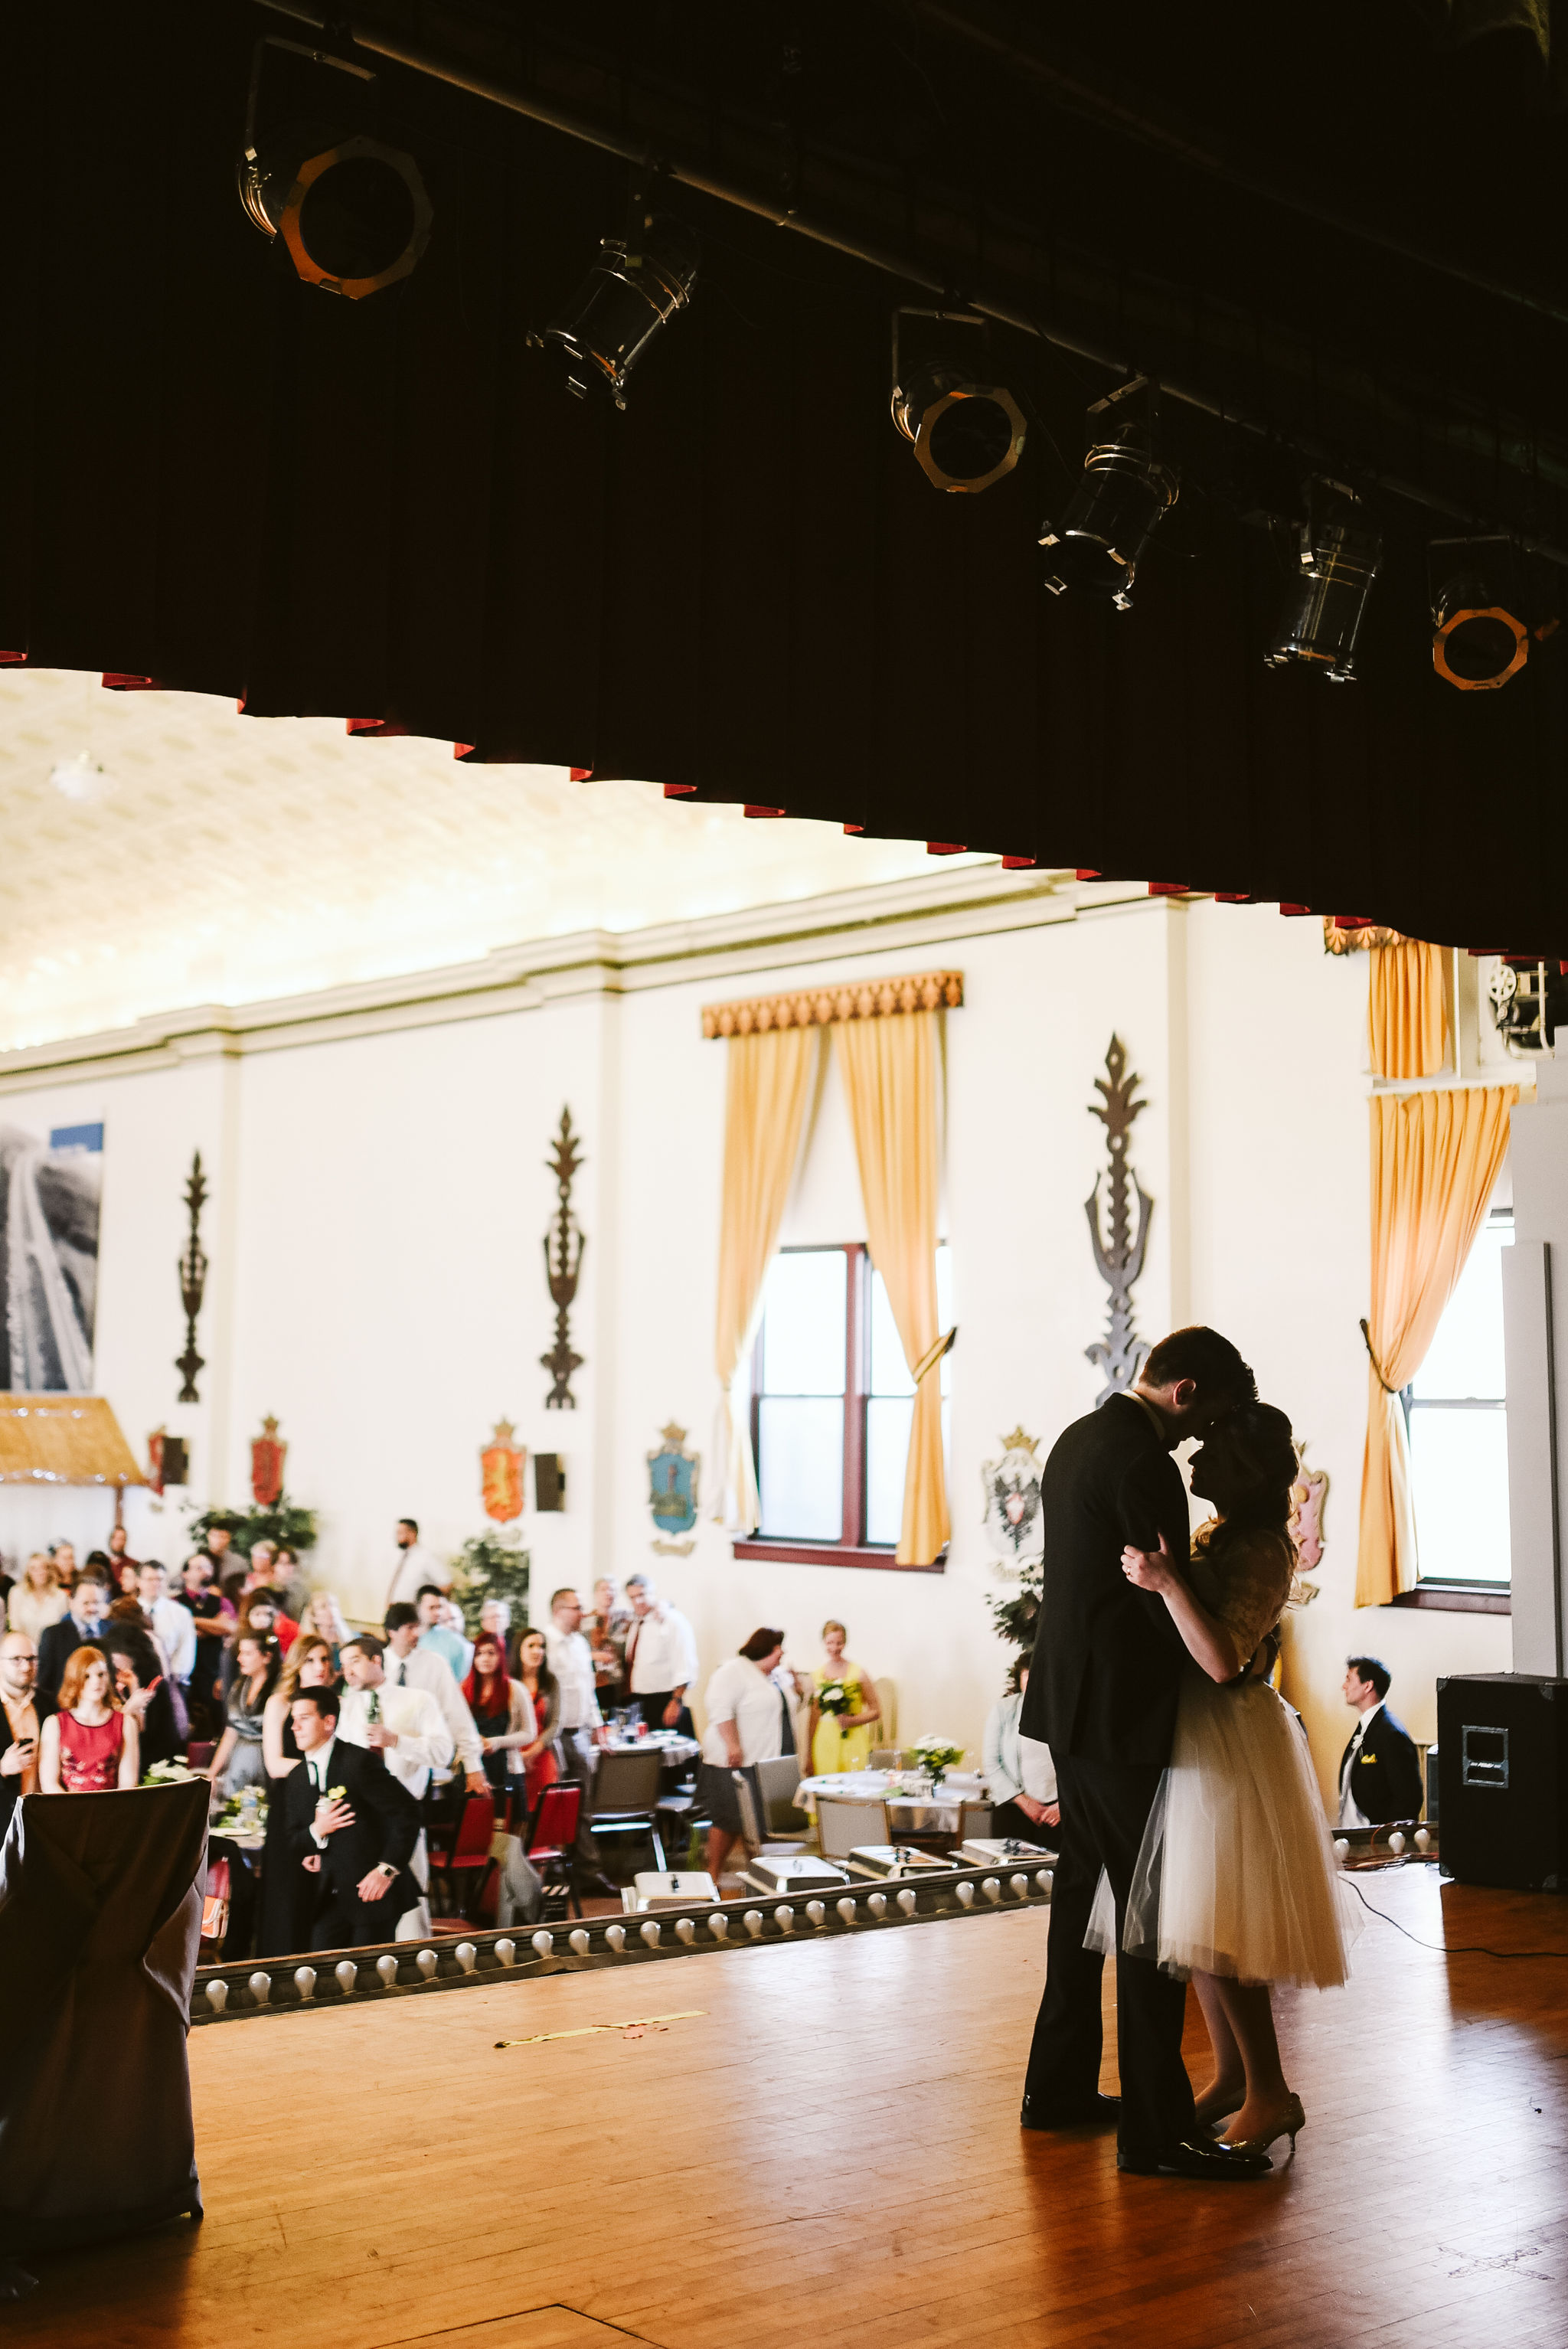 Baltimore, Lithuanian Dance Hall, Maryland Wedding Photographer, Vintage, Classic, 50s Style, Bride and Groom on Stage having Their First Dance, Guests Watching First Dance